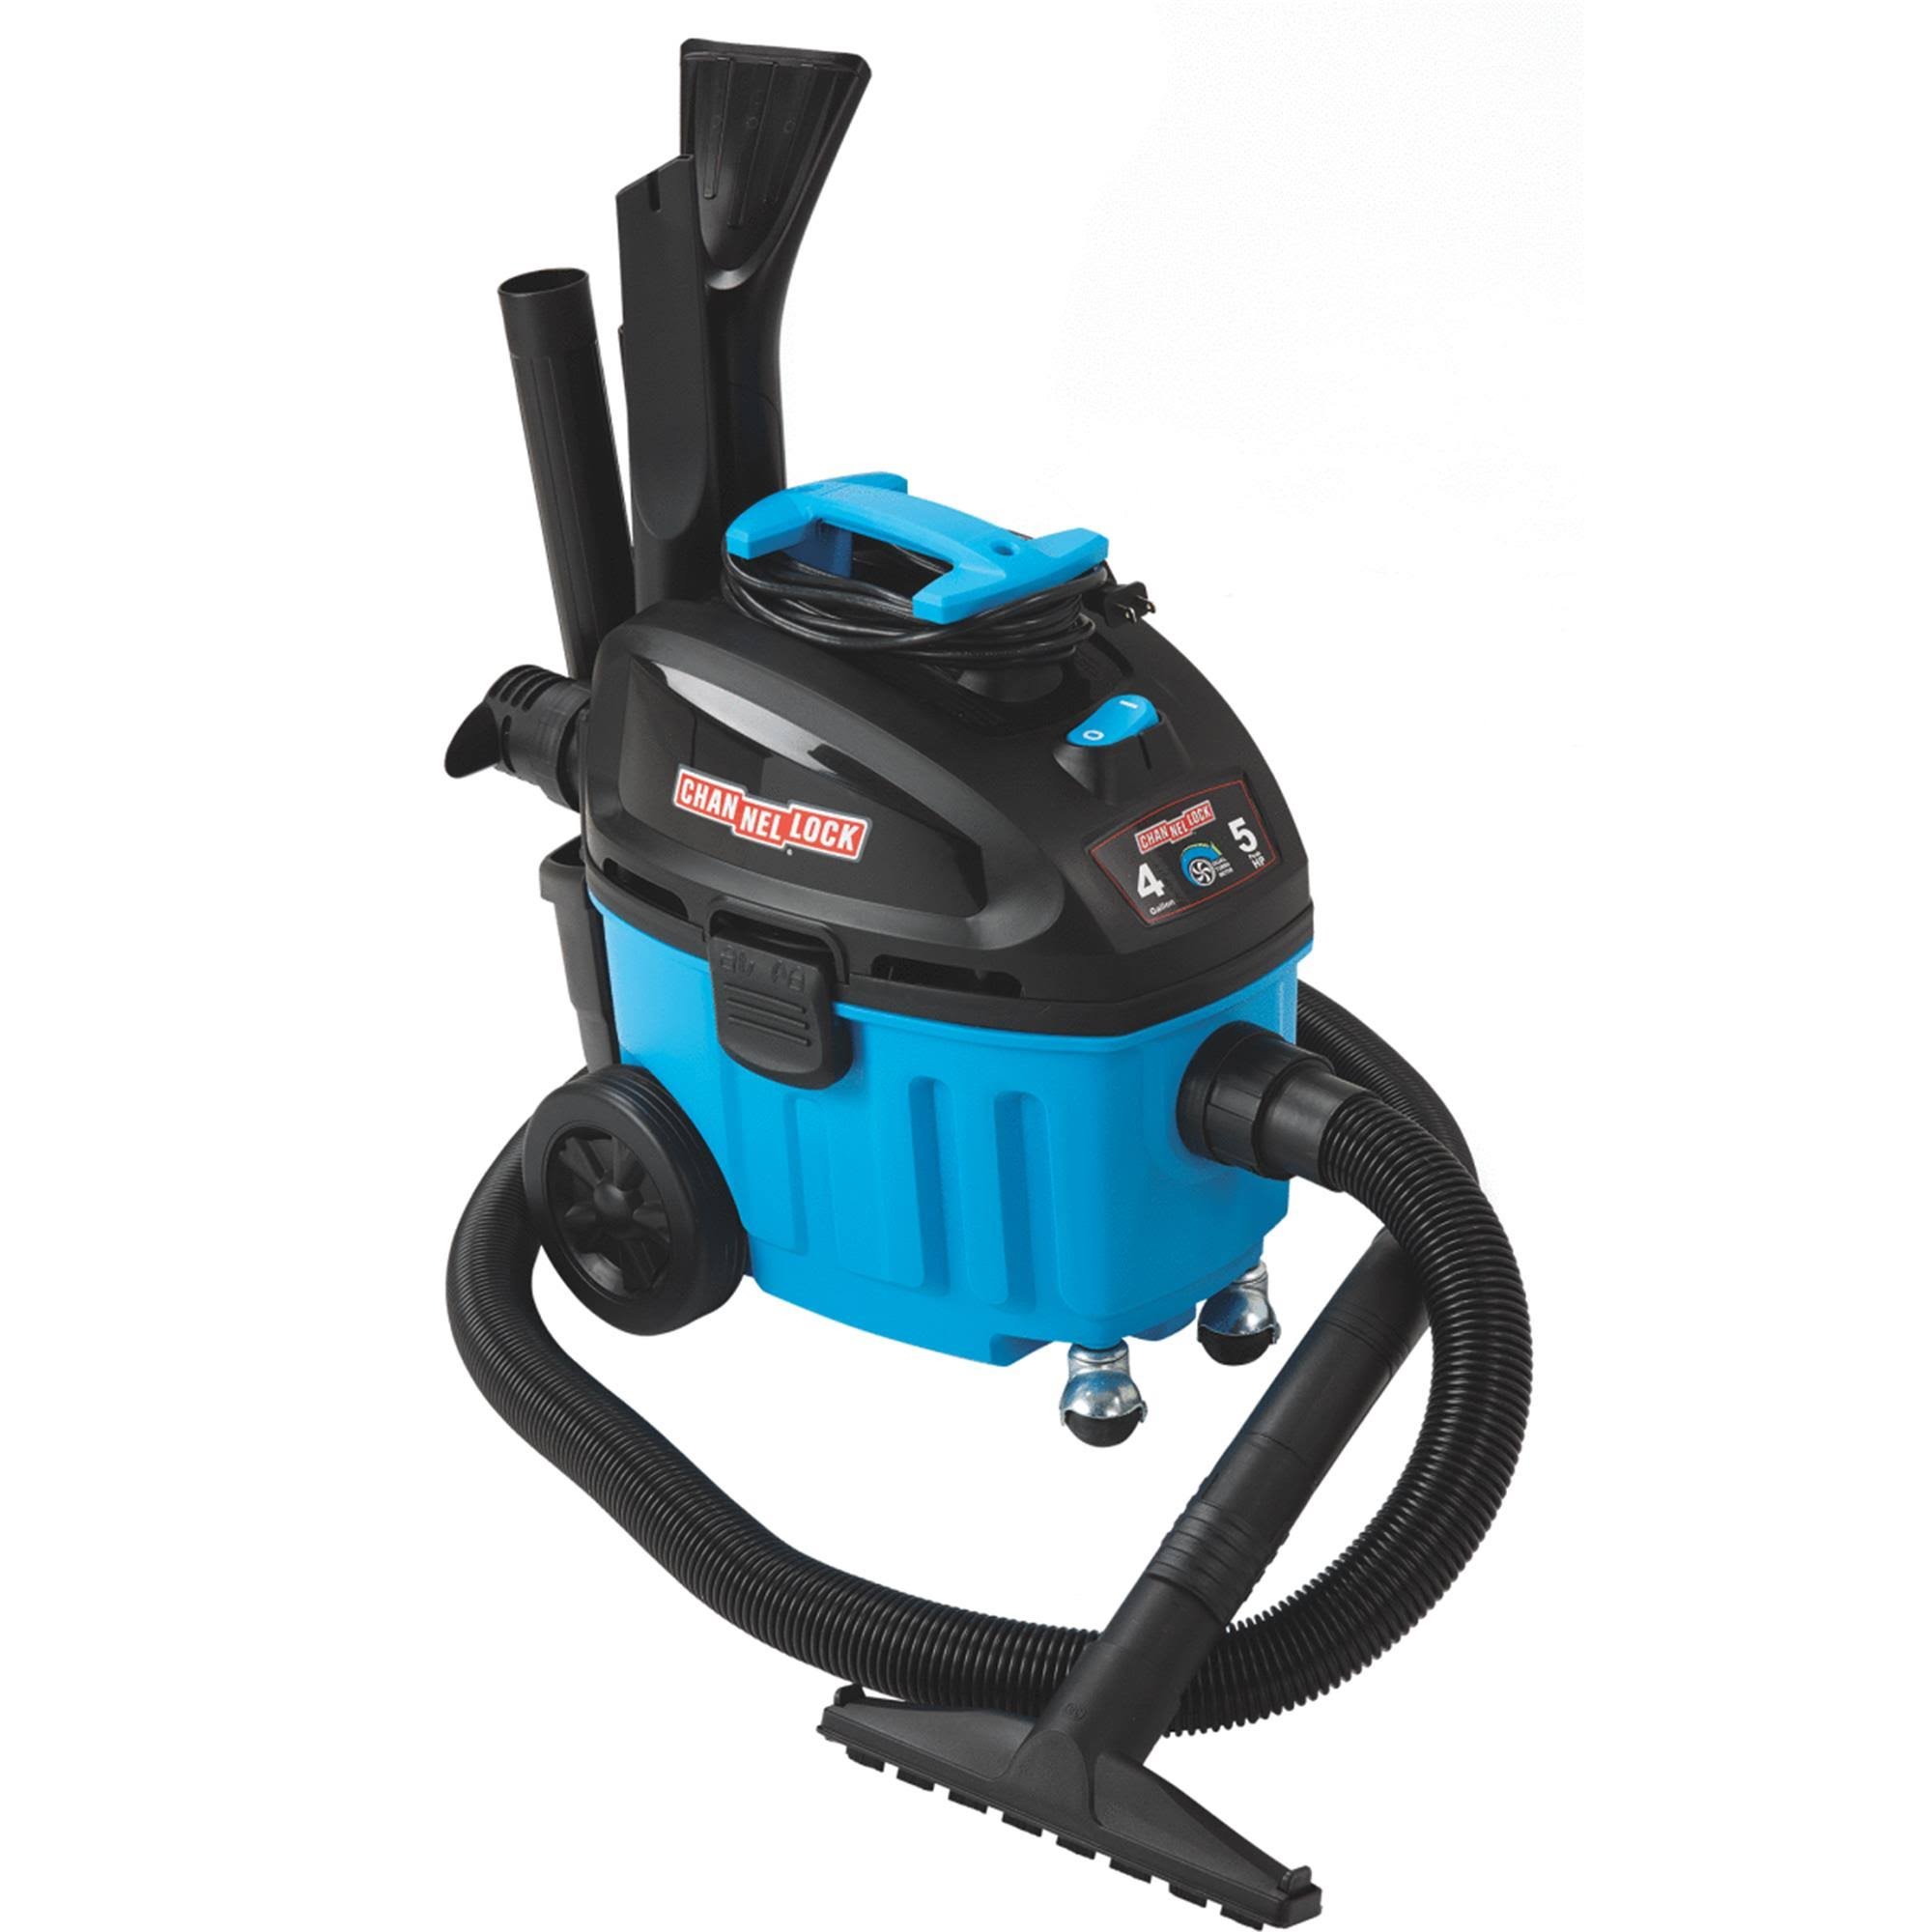 Channellock Contractor Wet/dry Vacuum - 4gal